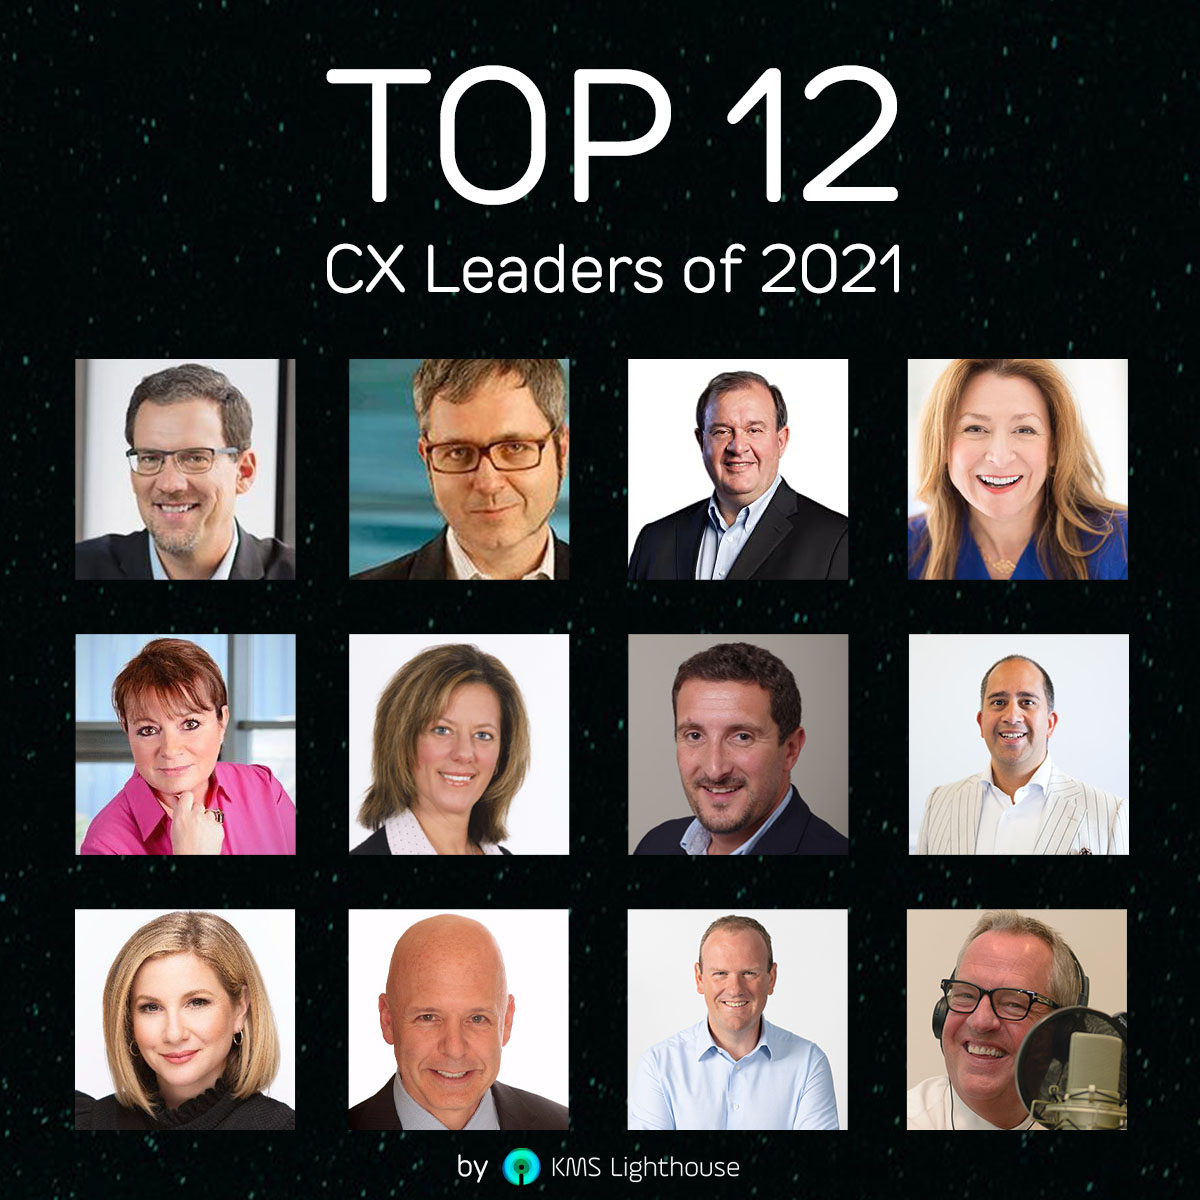 Top 12 CX Leaders to Look out for in 2021